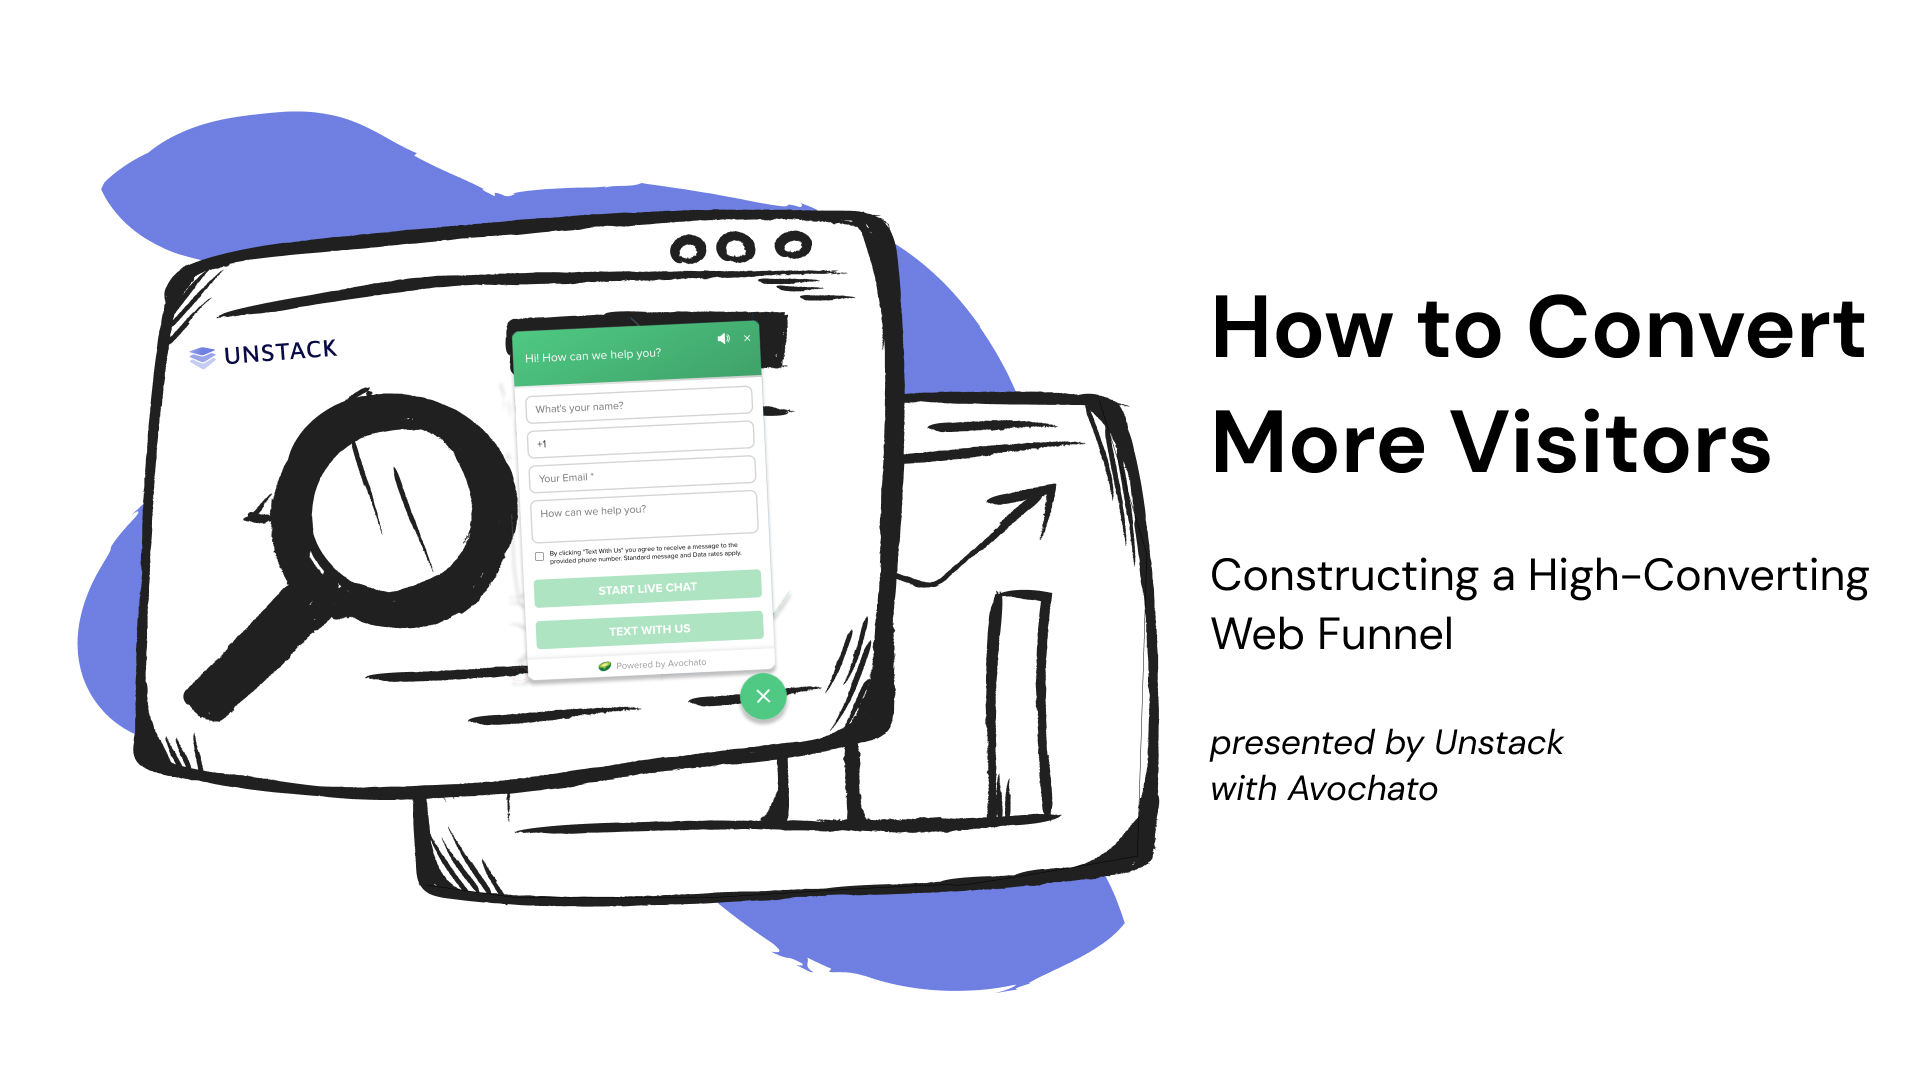 How to Convert More Visitors